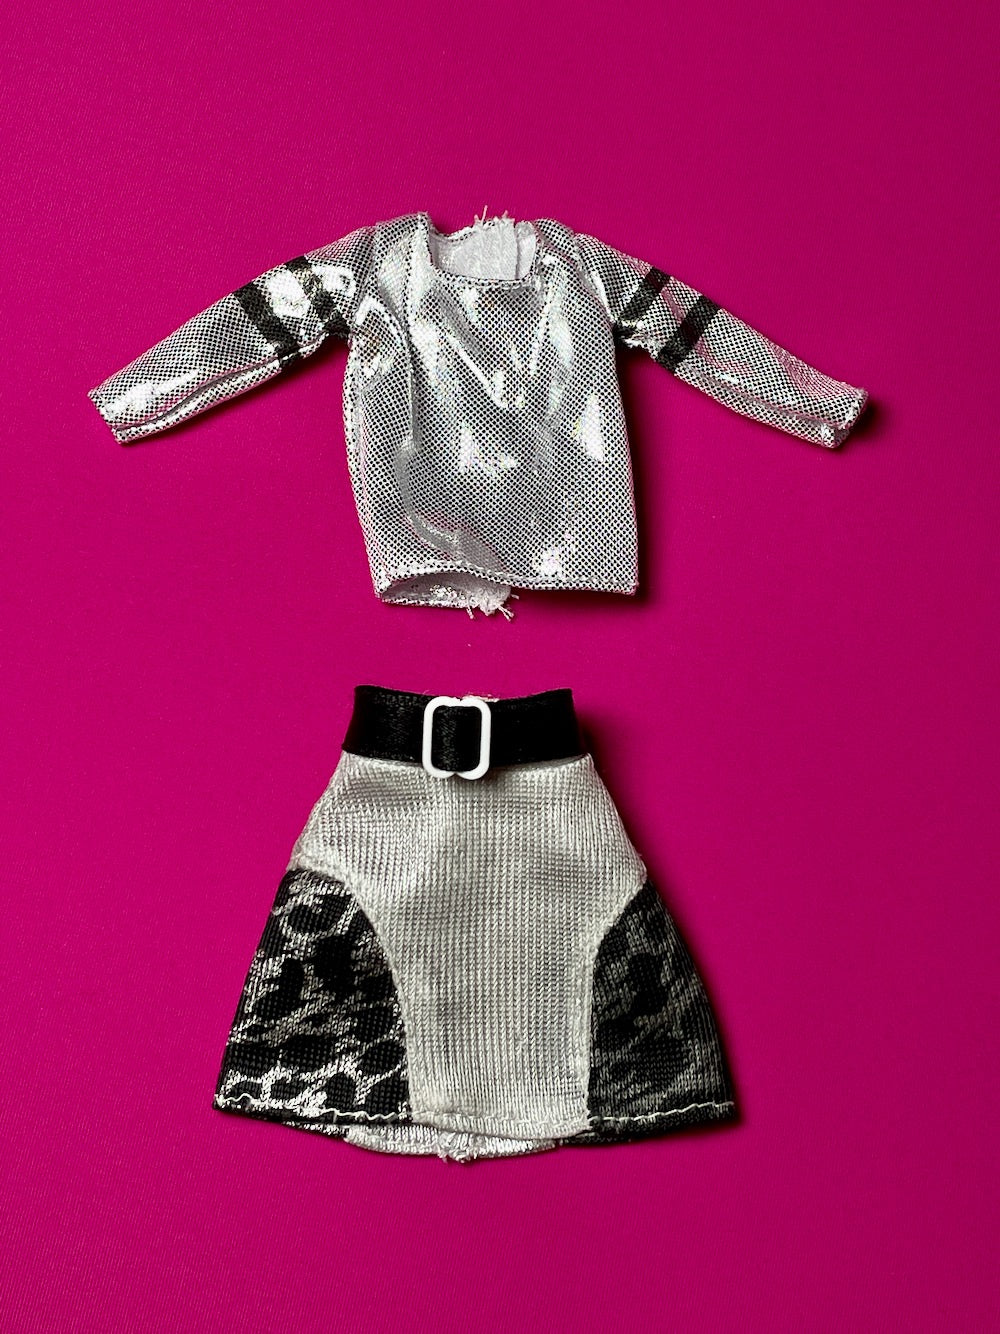 Creatable World silver top paired with vintage skirt fit 10